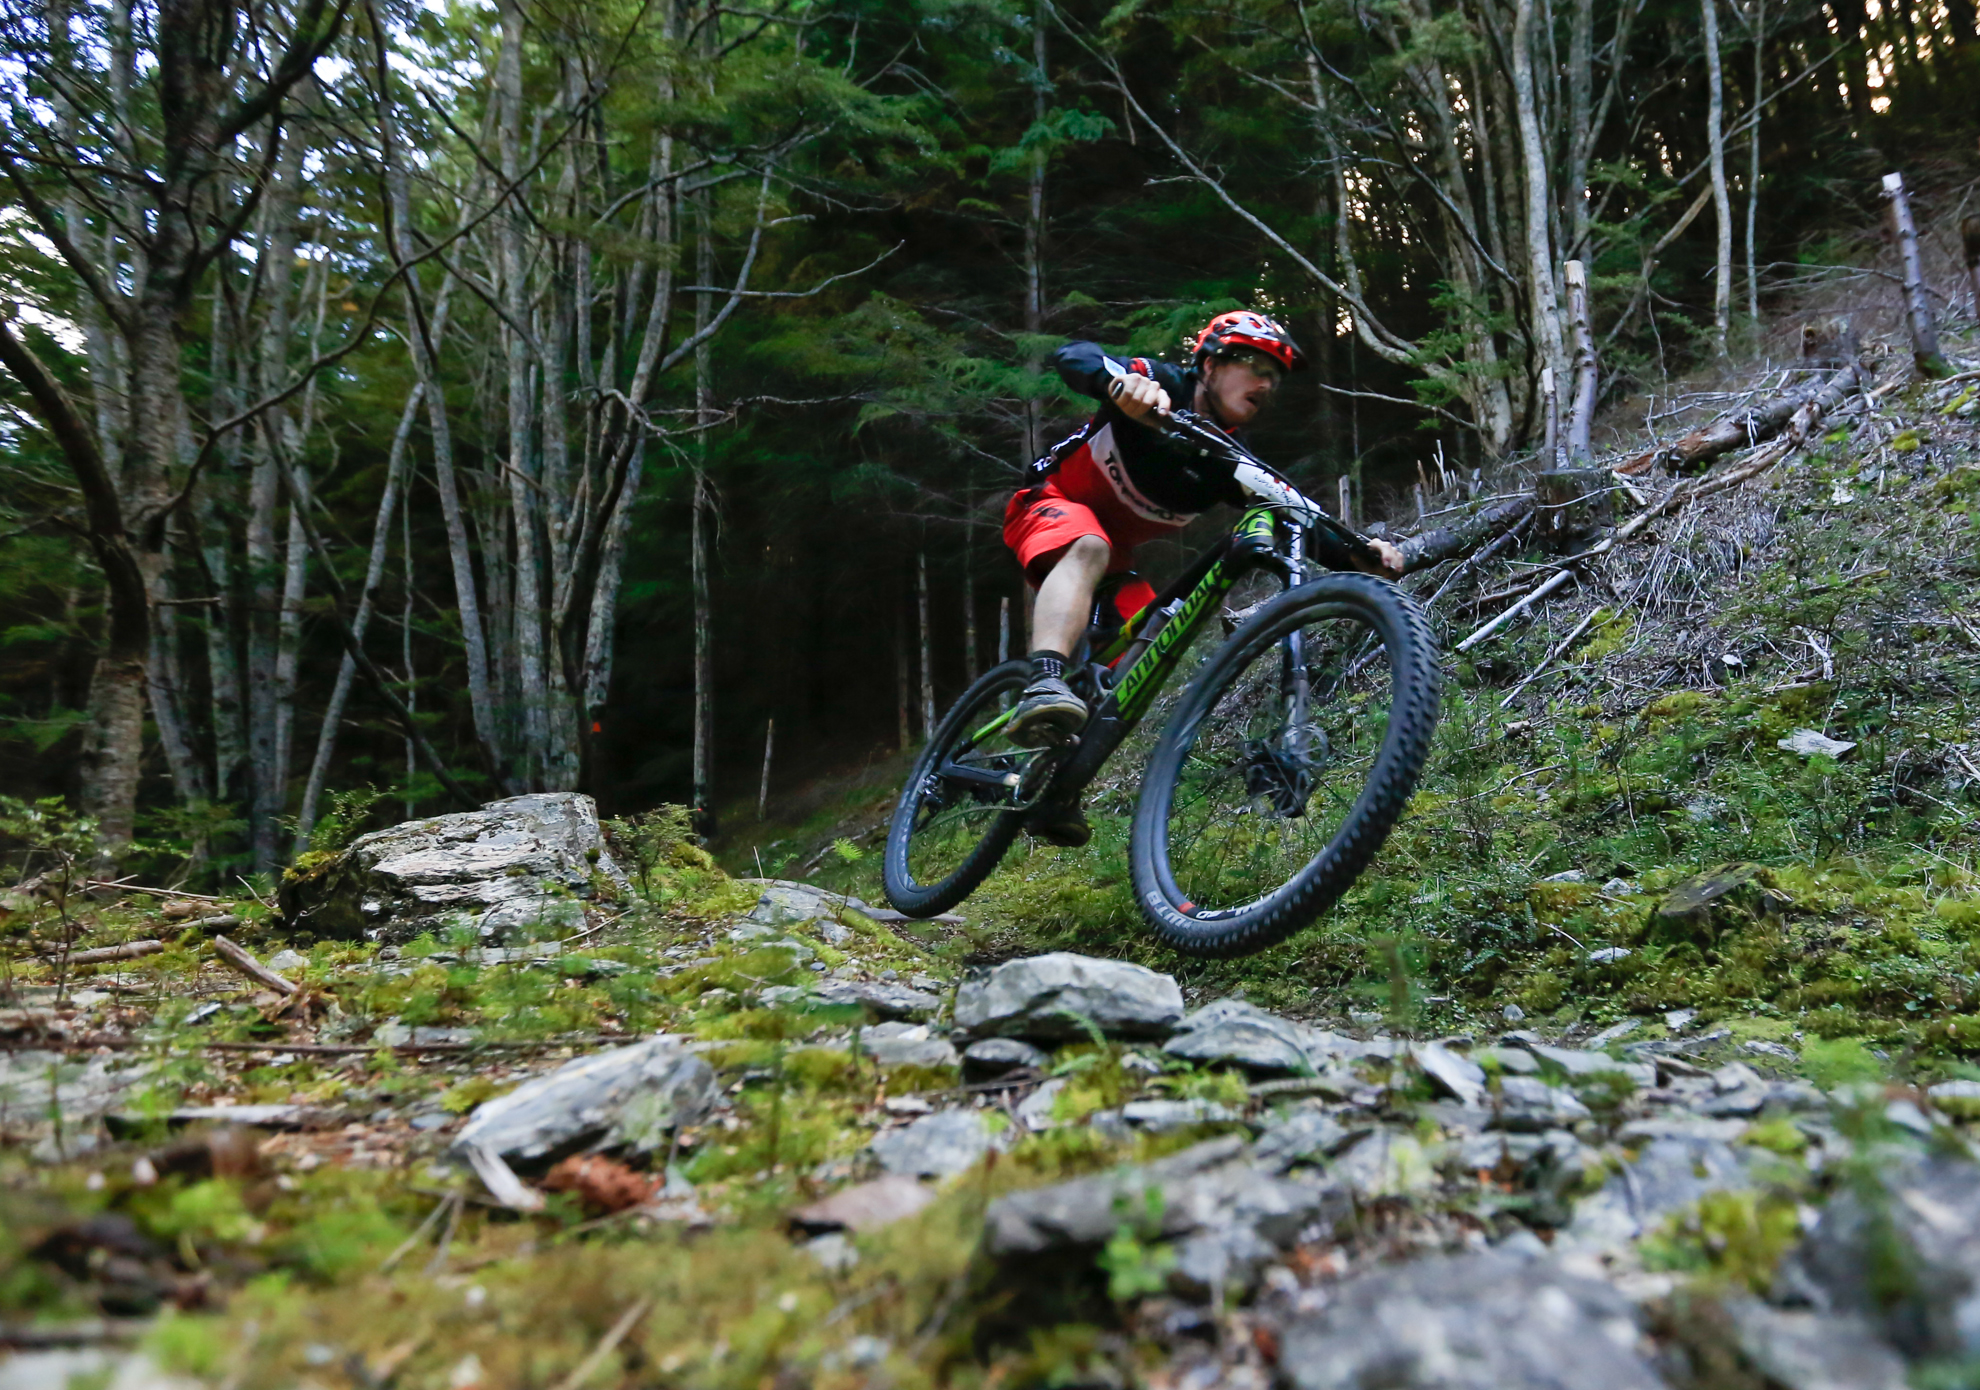 Jimmy Pollard from Queenstown, winner of the Vertigo Bikes Super D Enduro 2015. Photo riverleaphotography.com